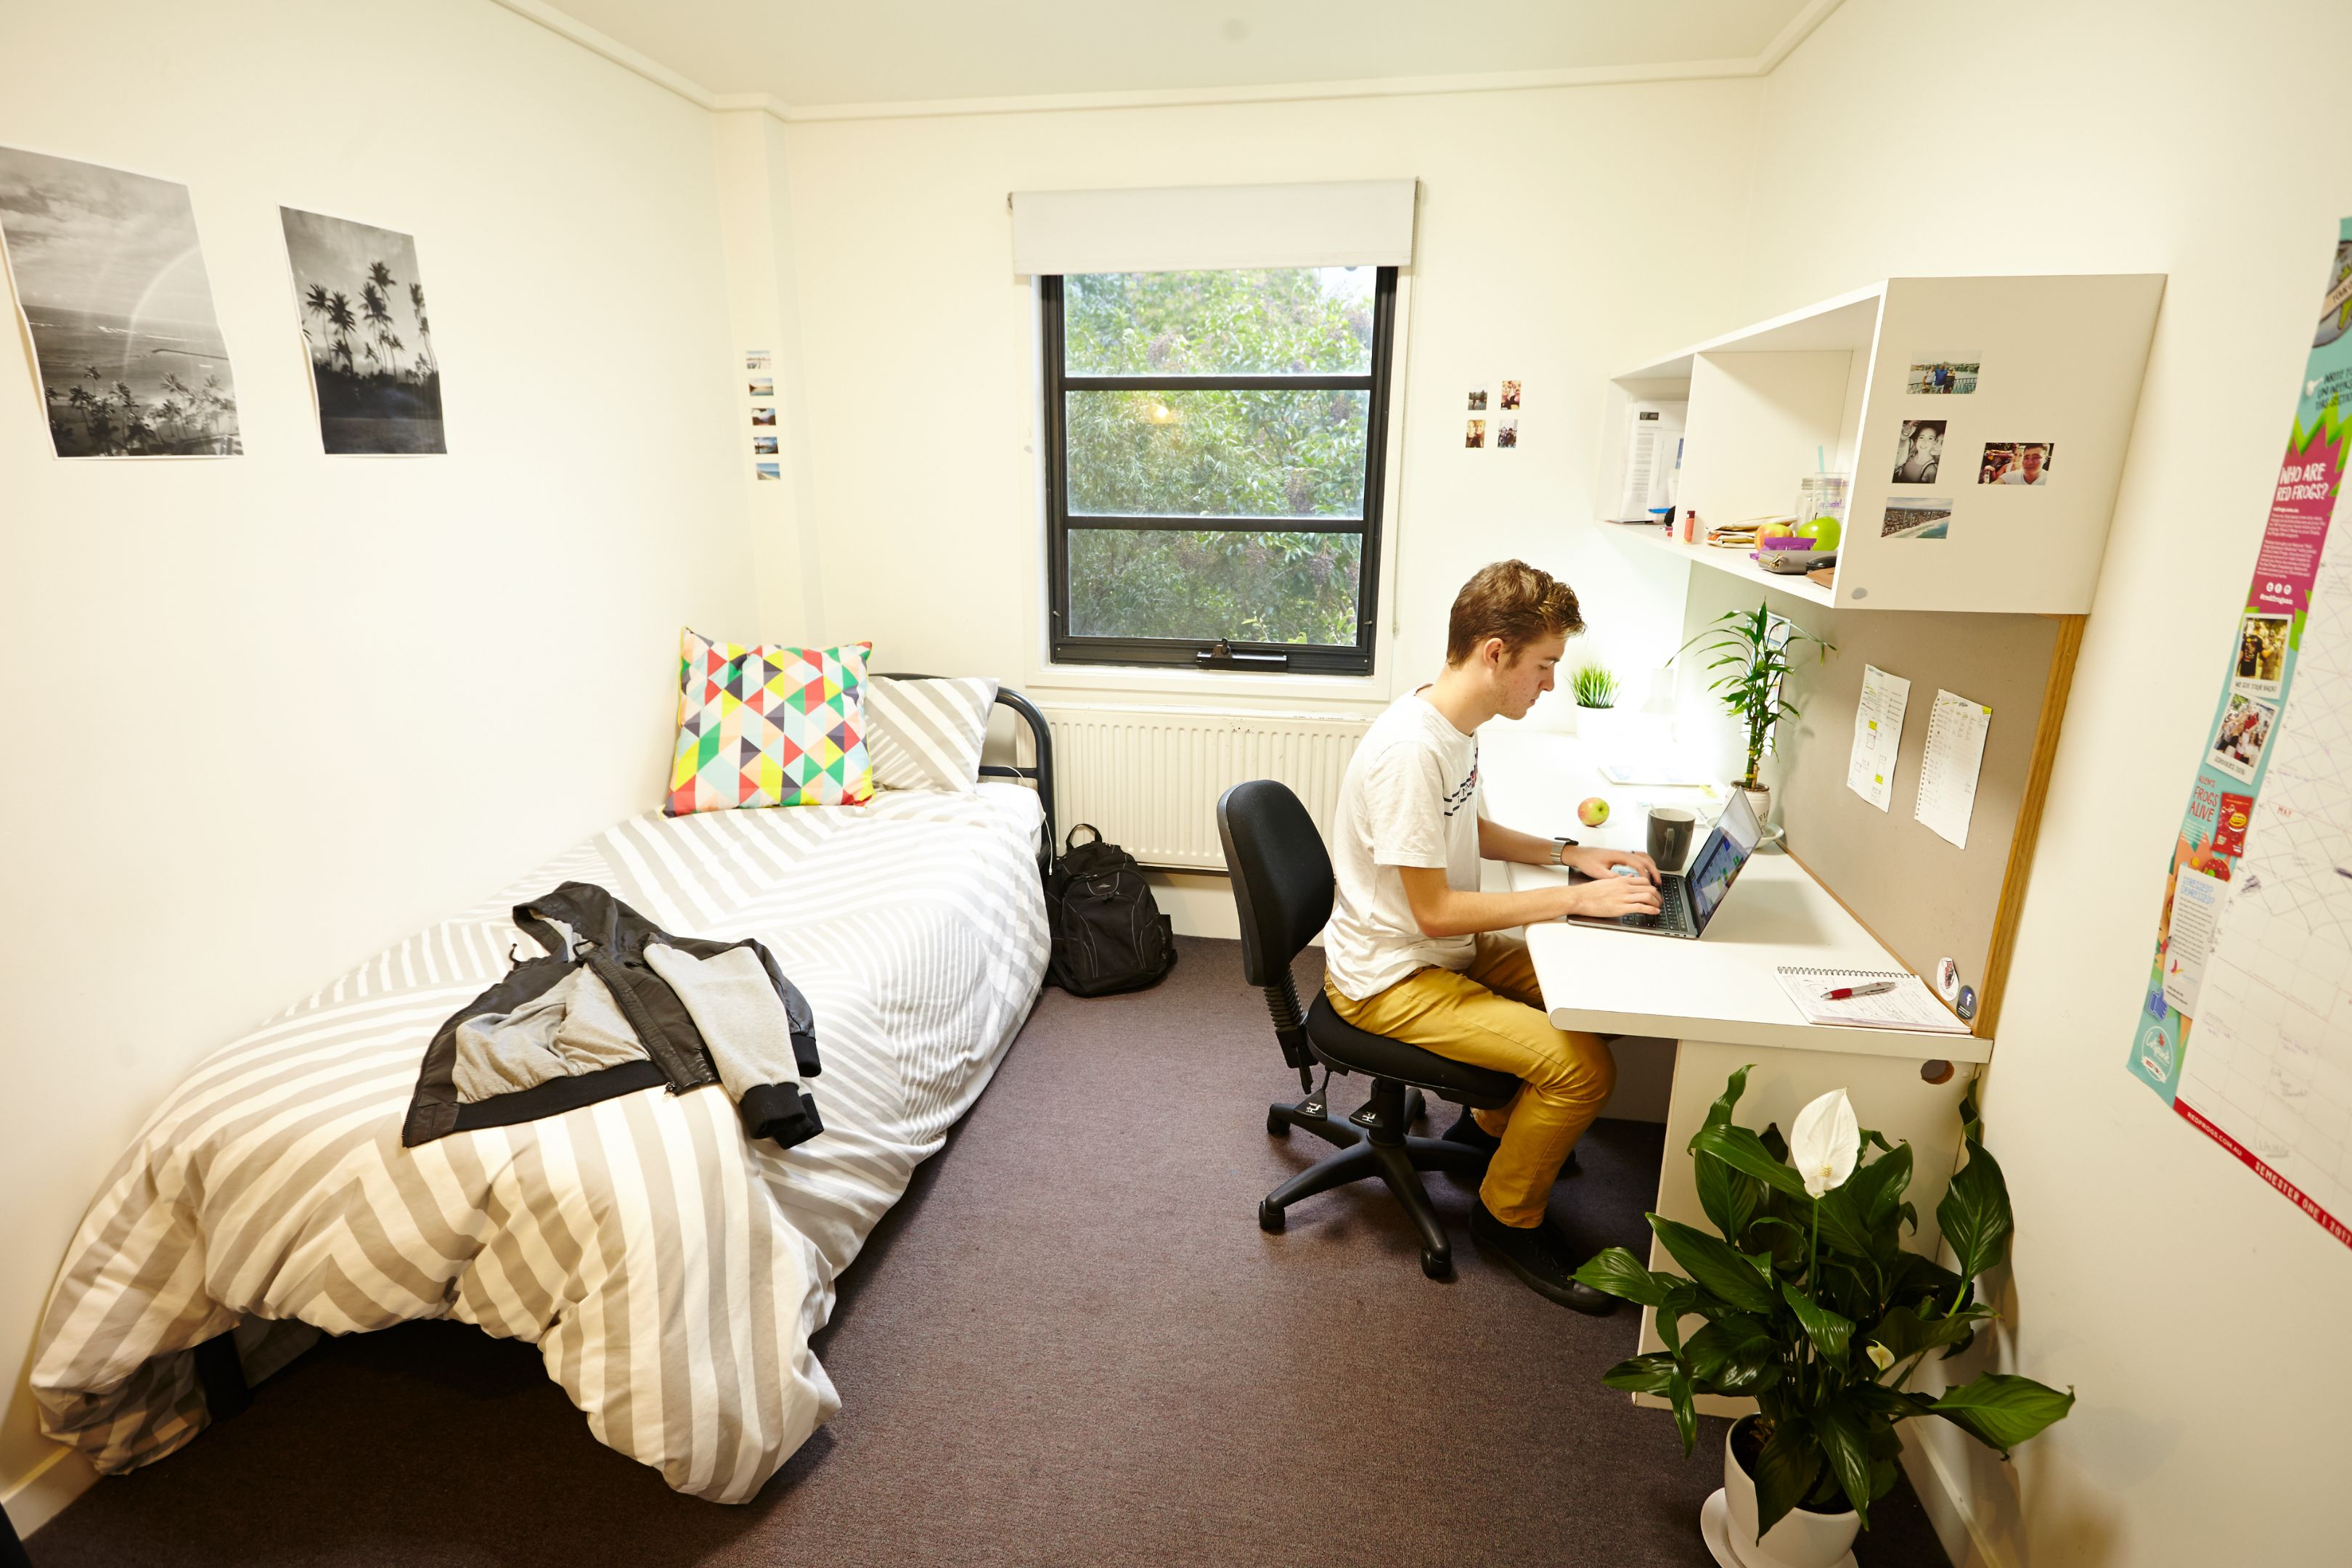 Student studies at his desk in at the on-campus accommodation at